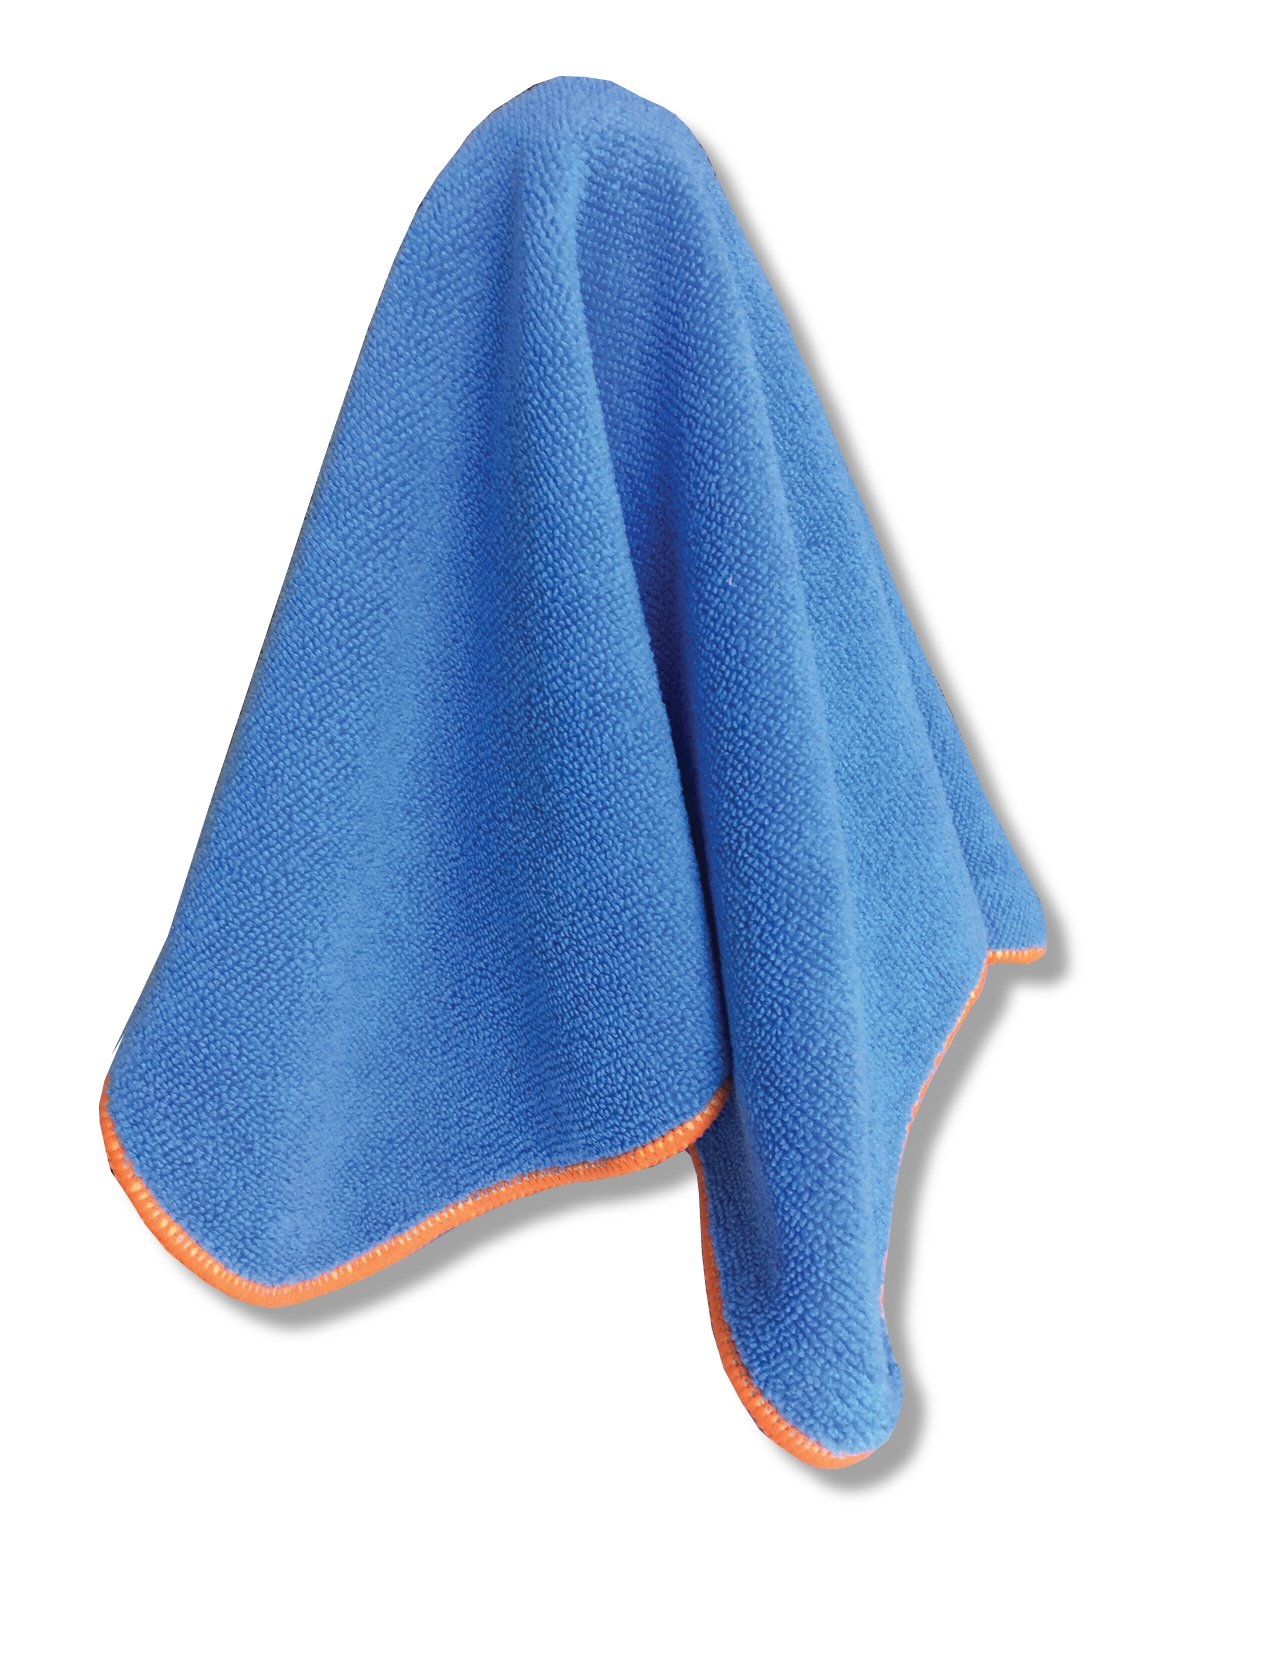 12'' x12'' Microfiber Cleaning Cloths with EPA Registered Silverclear DG-300 - Proven Killer of Viruses, Bacteria, and Staph MERSA - Go Beyond Ordinary Cleaning - 10 Pack of Washable/Reusable Cloths